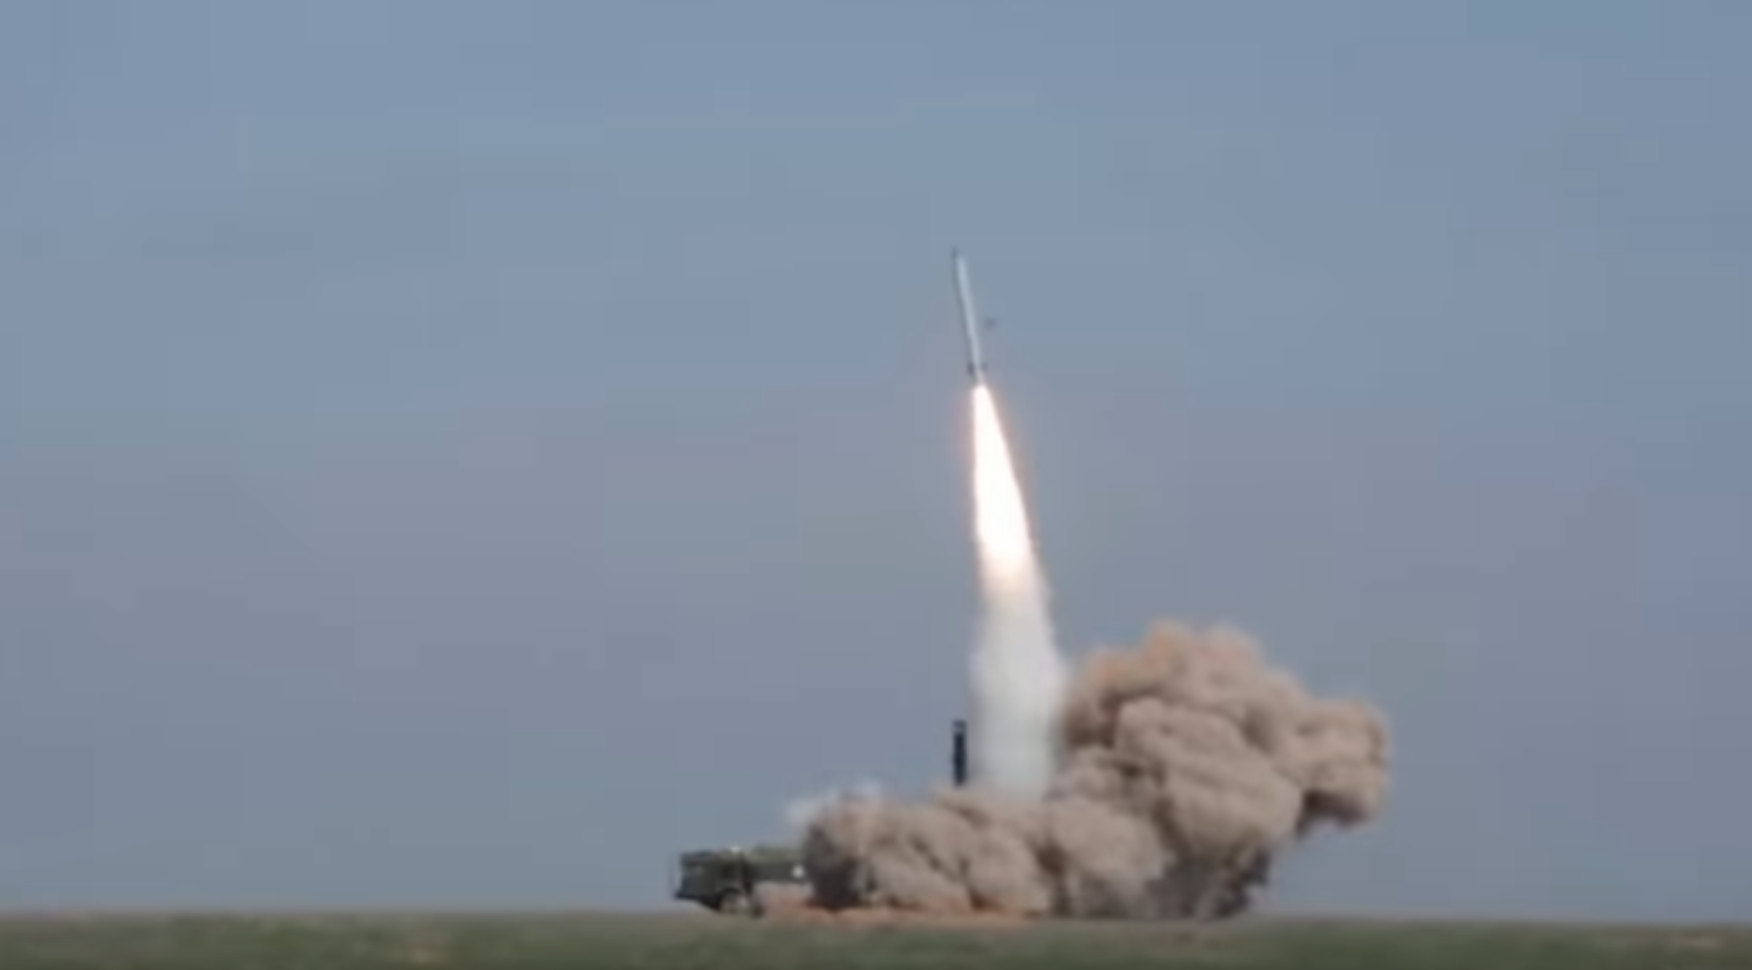 Russian missile test footage of a 9M723